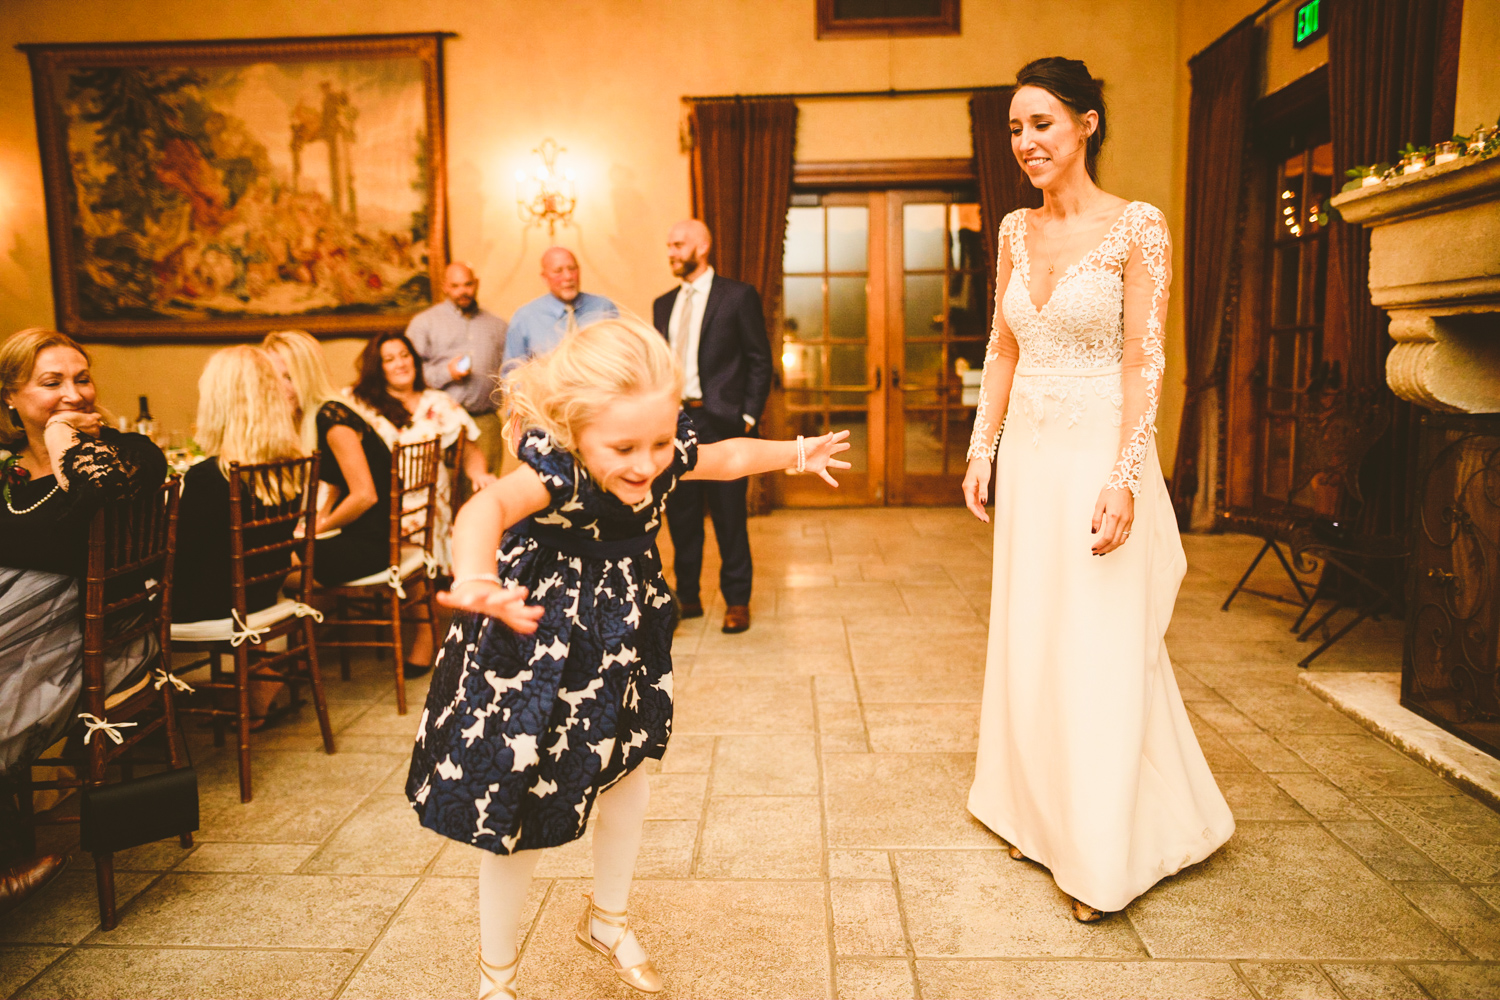 038 - daughter of the bride jumps around at the reception.jpg